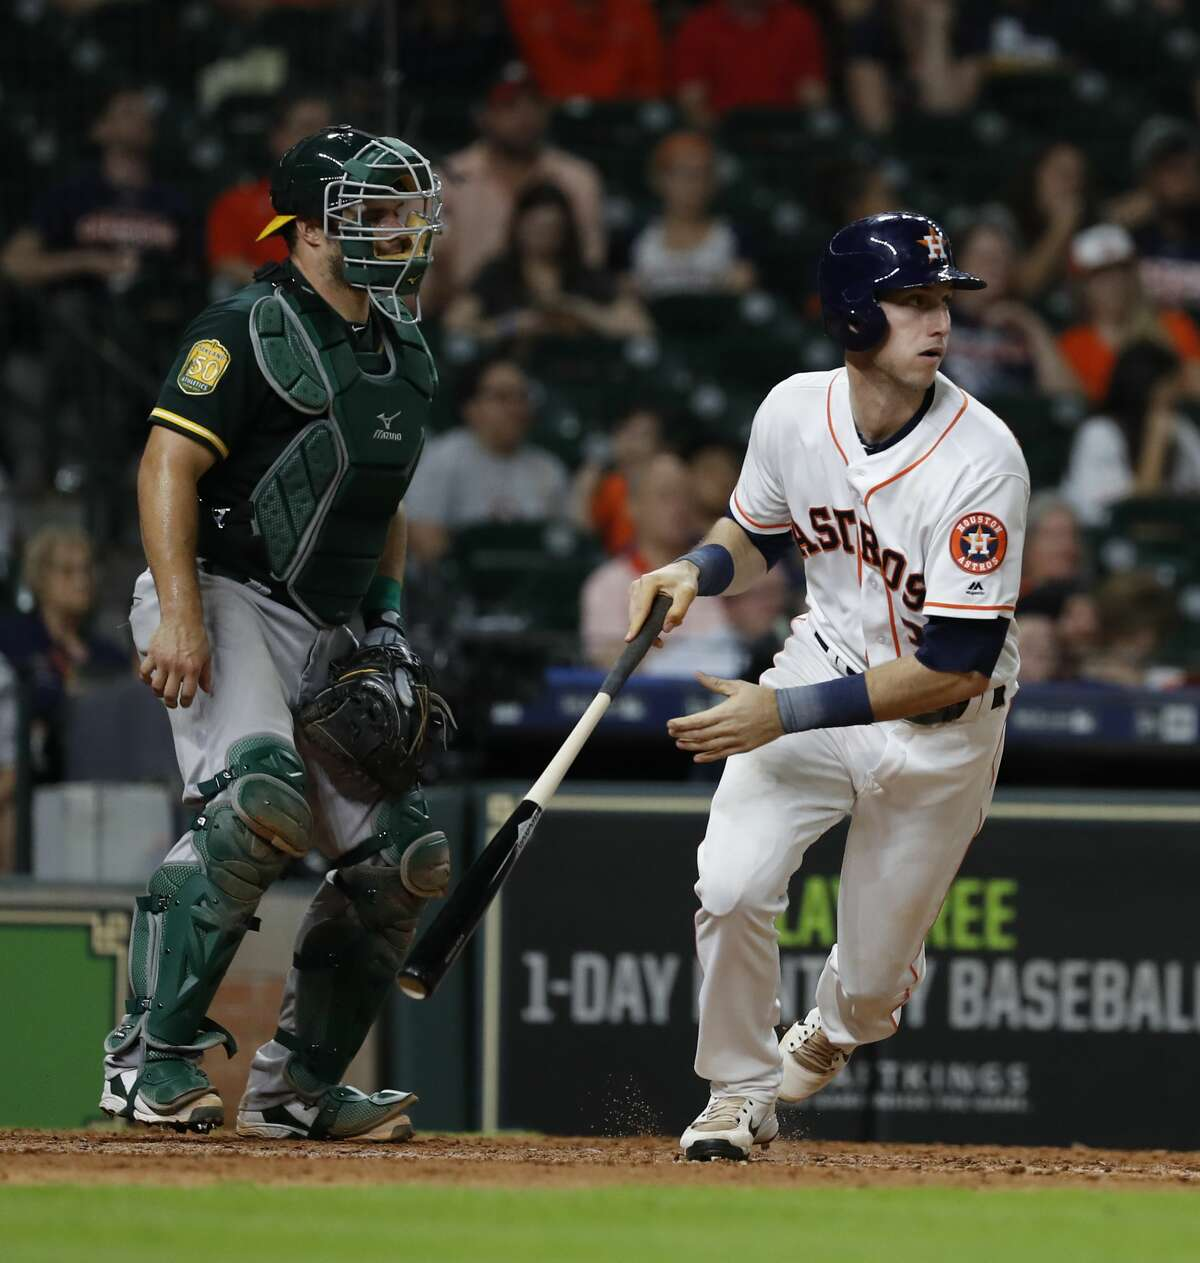 Houston Astros Kyle Tucker (3) runs up the line after hitting a single during the ninth inning of an MLB game at Minute Maid Park, Wednesday, July 11, 2018, in Houston. ( Karen Warren / Houston Chronicle )